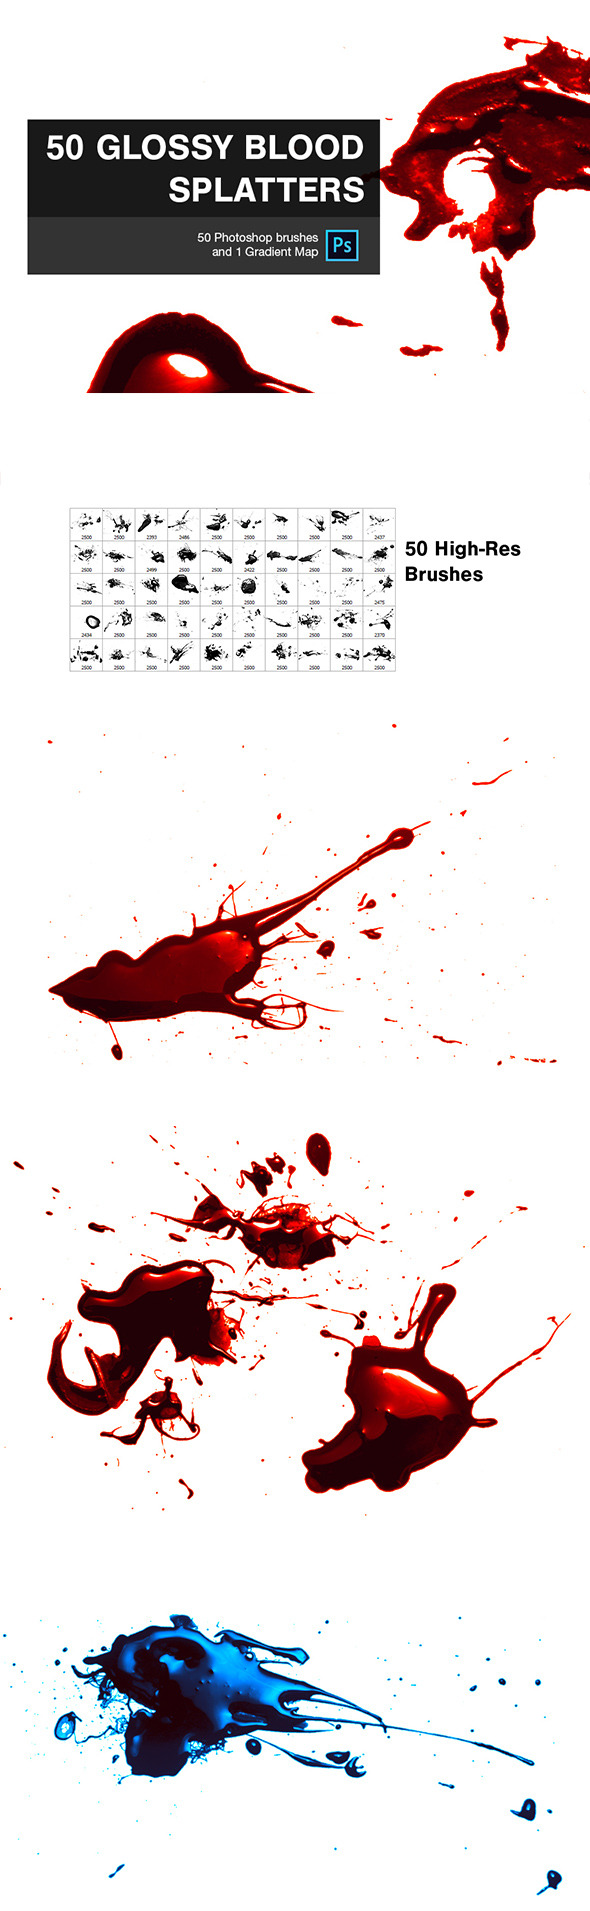 50 Glossy Blood Splatters - Grunge Brushes